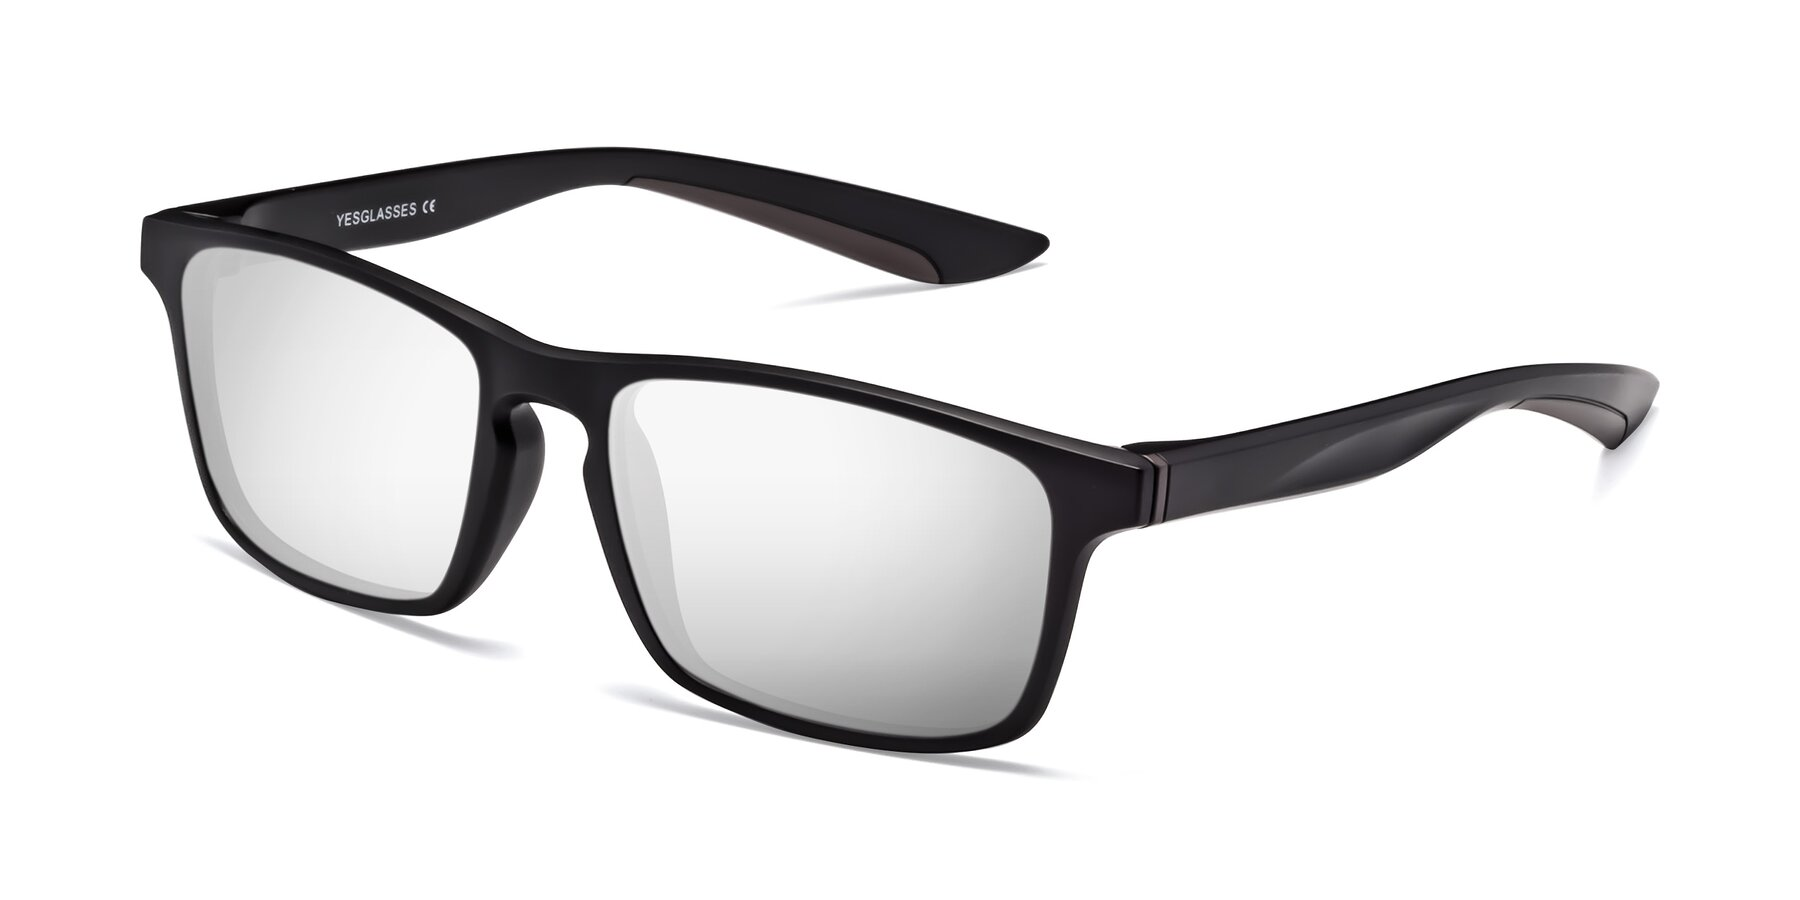 Angle of Passion in Matte Black-Coffee with Silver Mirrored Lenses